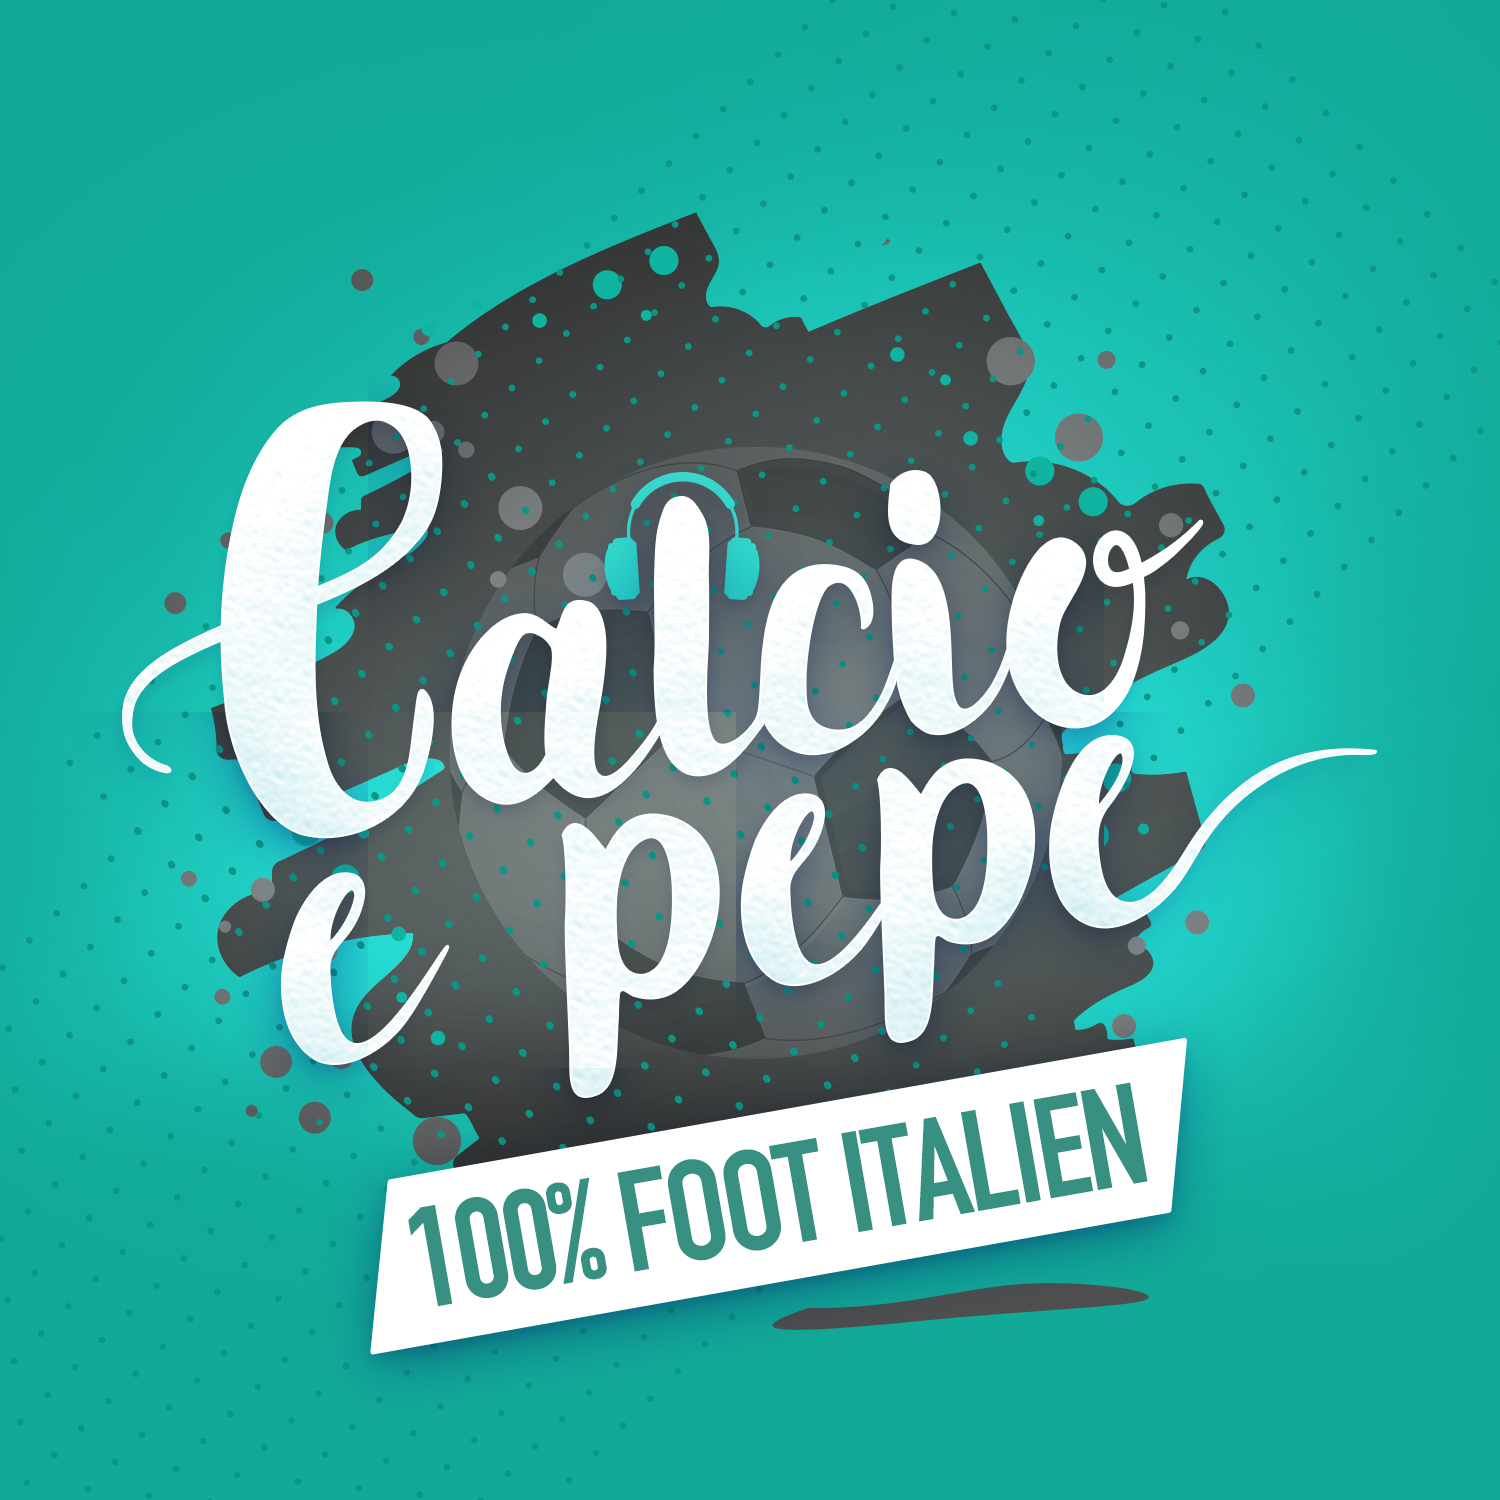 Calcio e pepe, le podcast 100% foot italien Logo